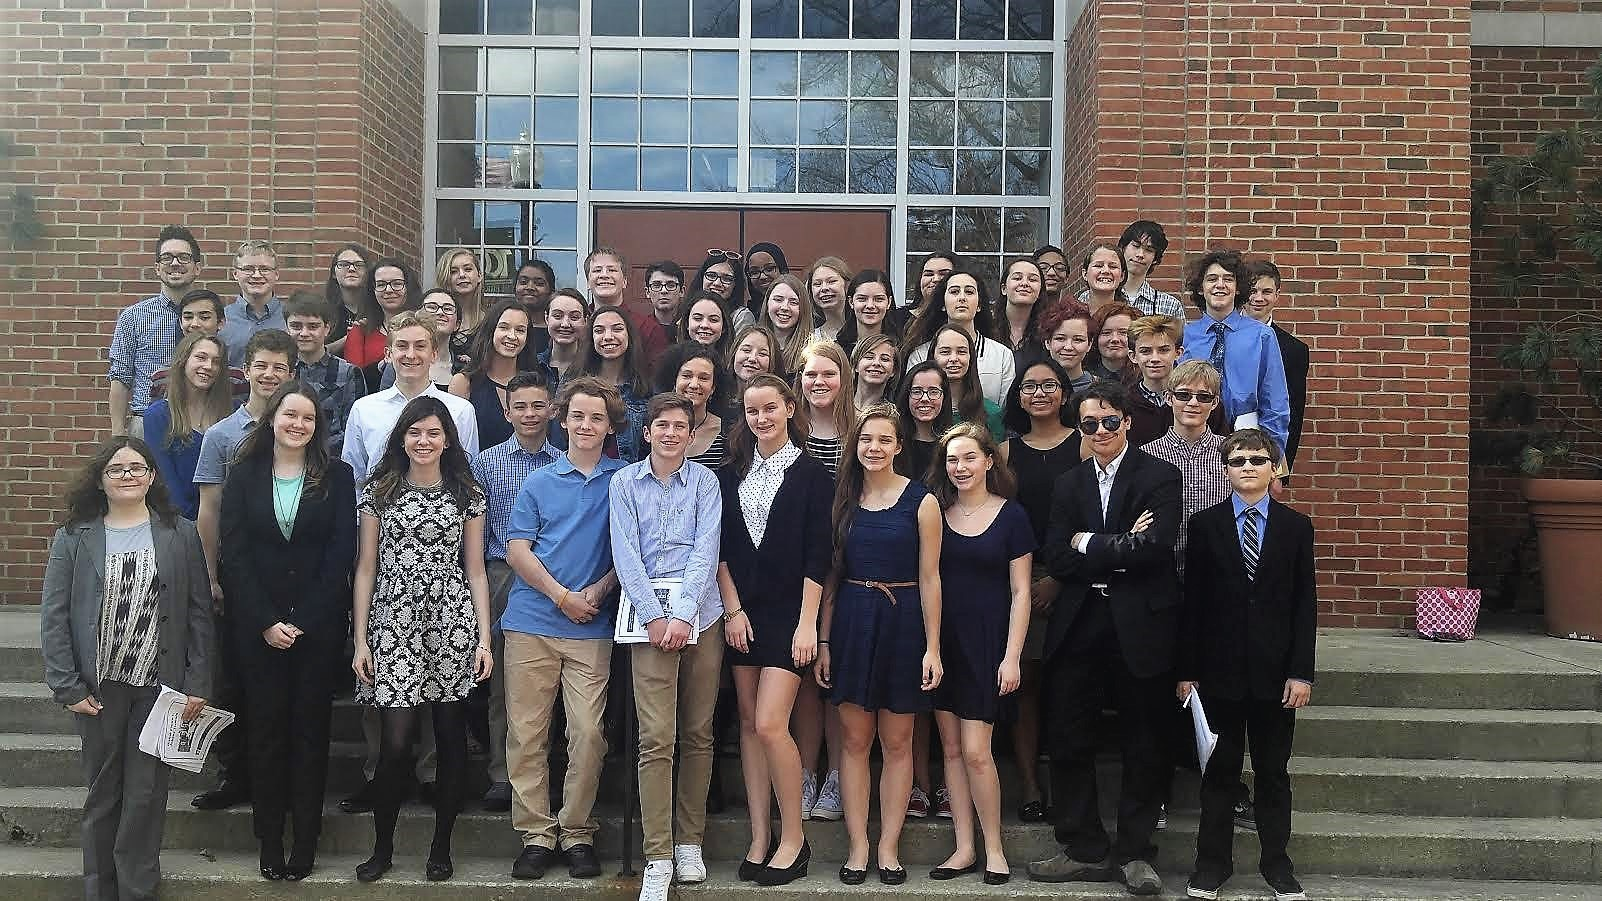 Picuter of Westerville's Middle School Mock Trial team photographed outside of Columbus City Council chambers